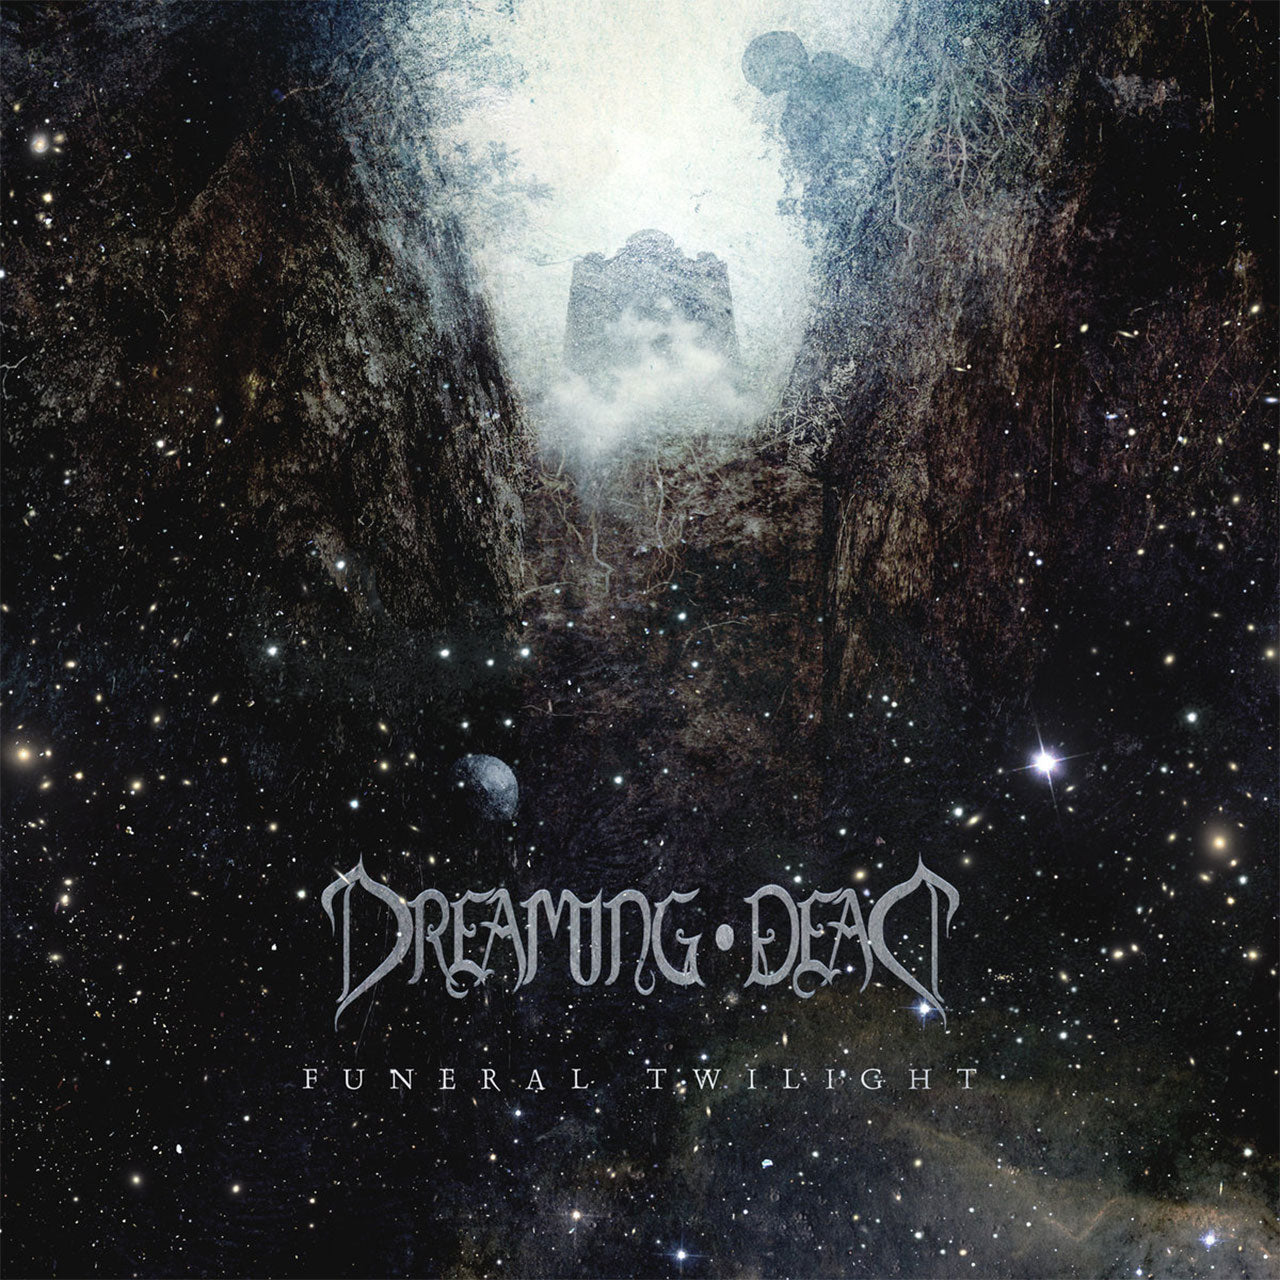 Dreaming Dead - Funeral Twilight (CD)